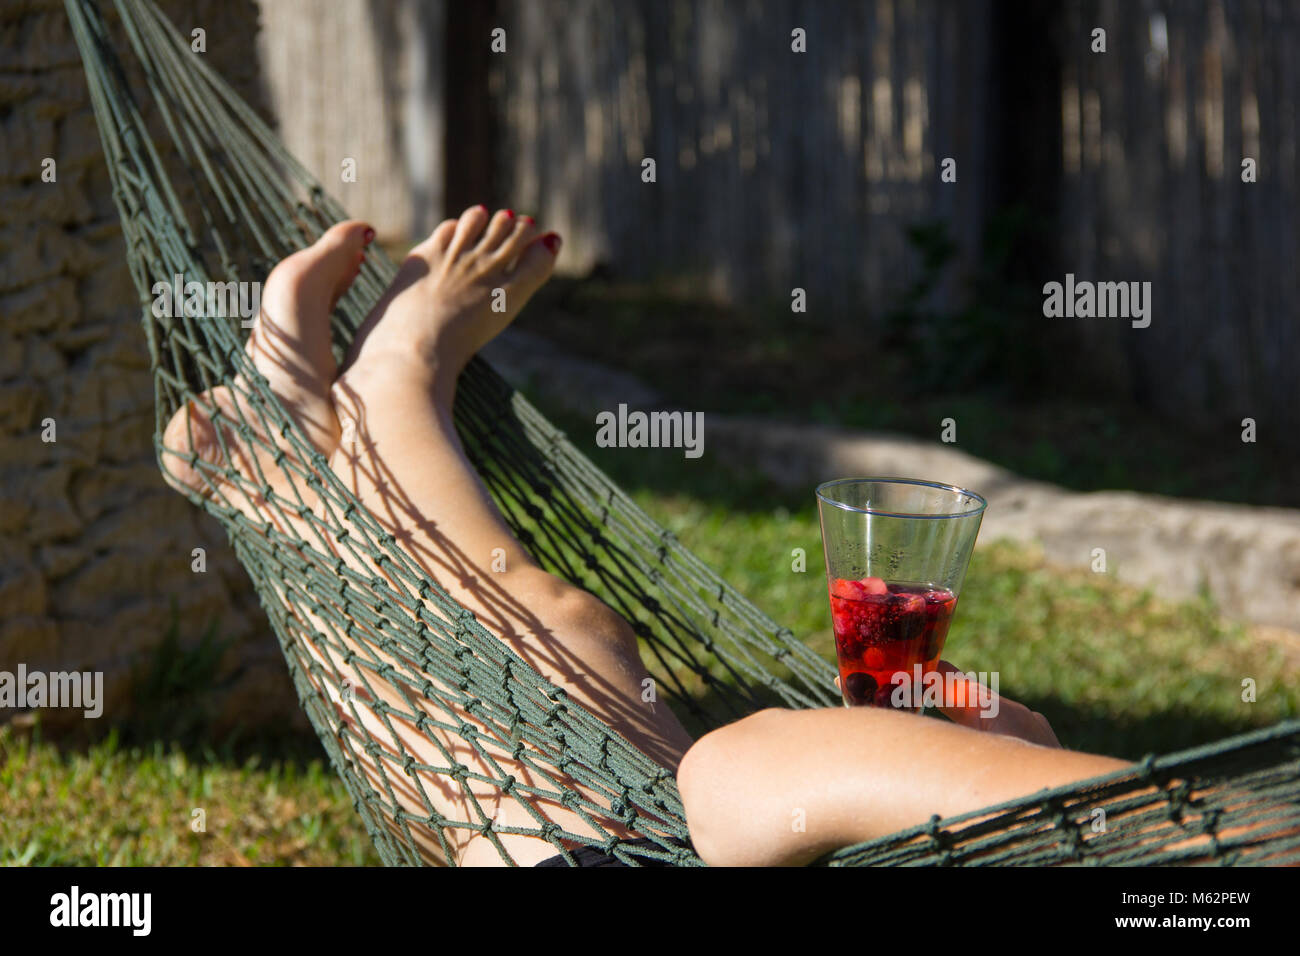 Woman on backyard net hammock chilling out holding cocktail